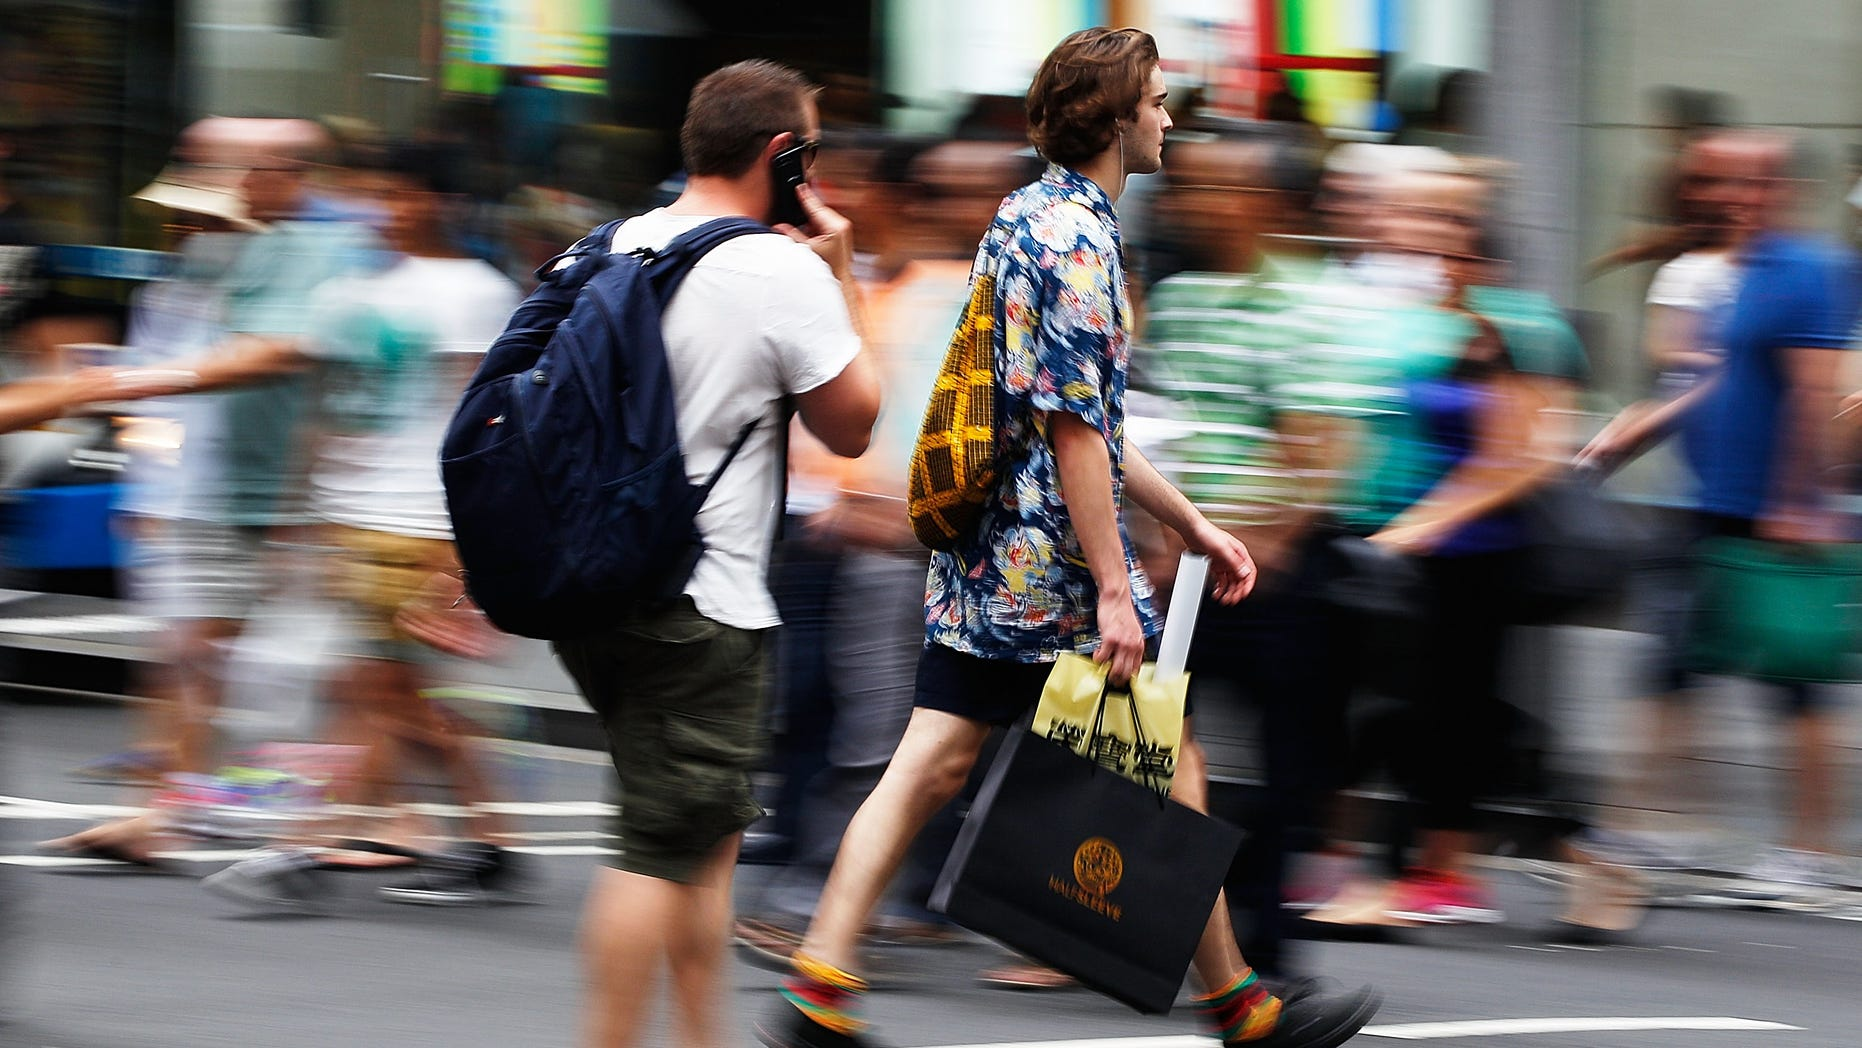 SYDNEY, AUSTRALIA - DECEMBER 23:  Shoppers flock to stores as retailers experience boost in sales on December 23, 2013 in Sydney, Australia. Australian retailers experience some of their busiest trades in the days leading up to Christmas with atleast $20 billion spent already. (Photo by Brendon Thorne/Getty Images)